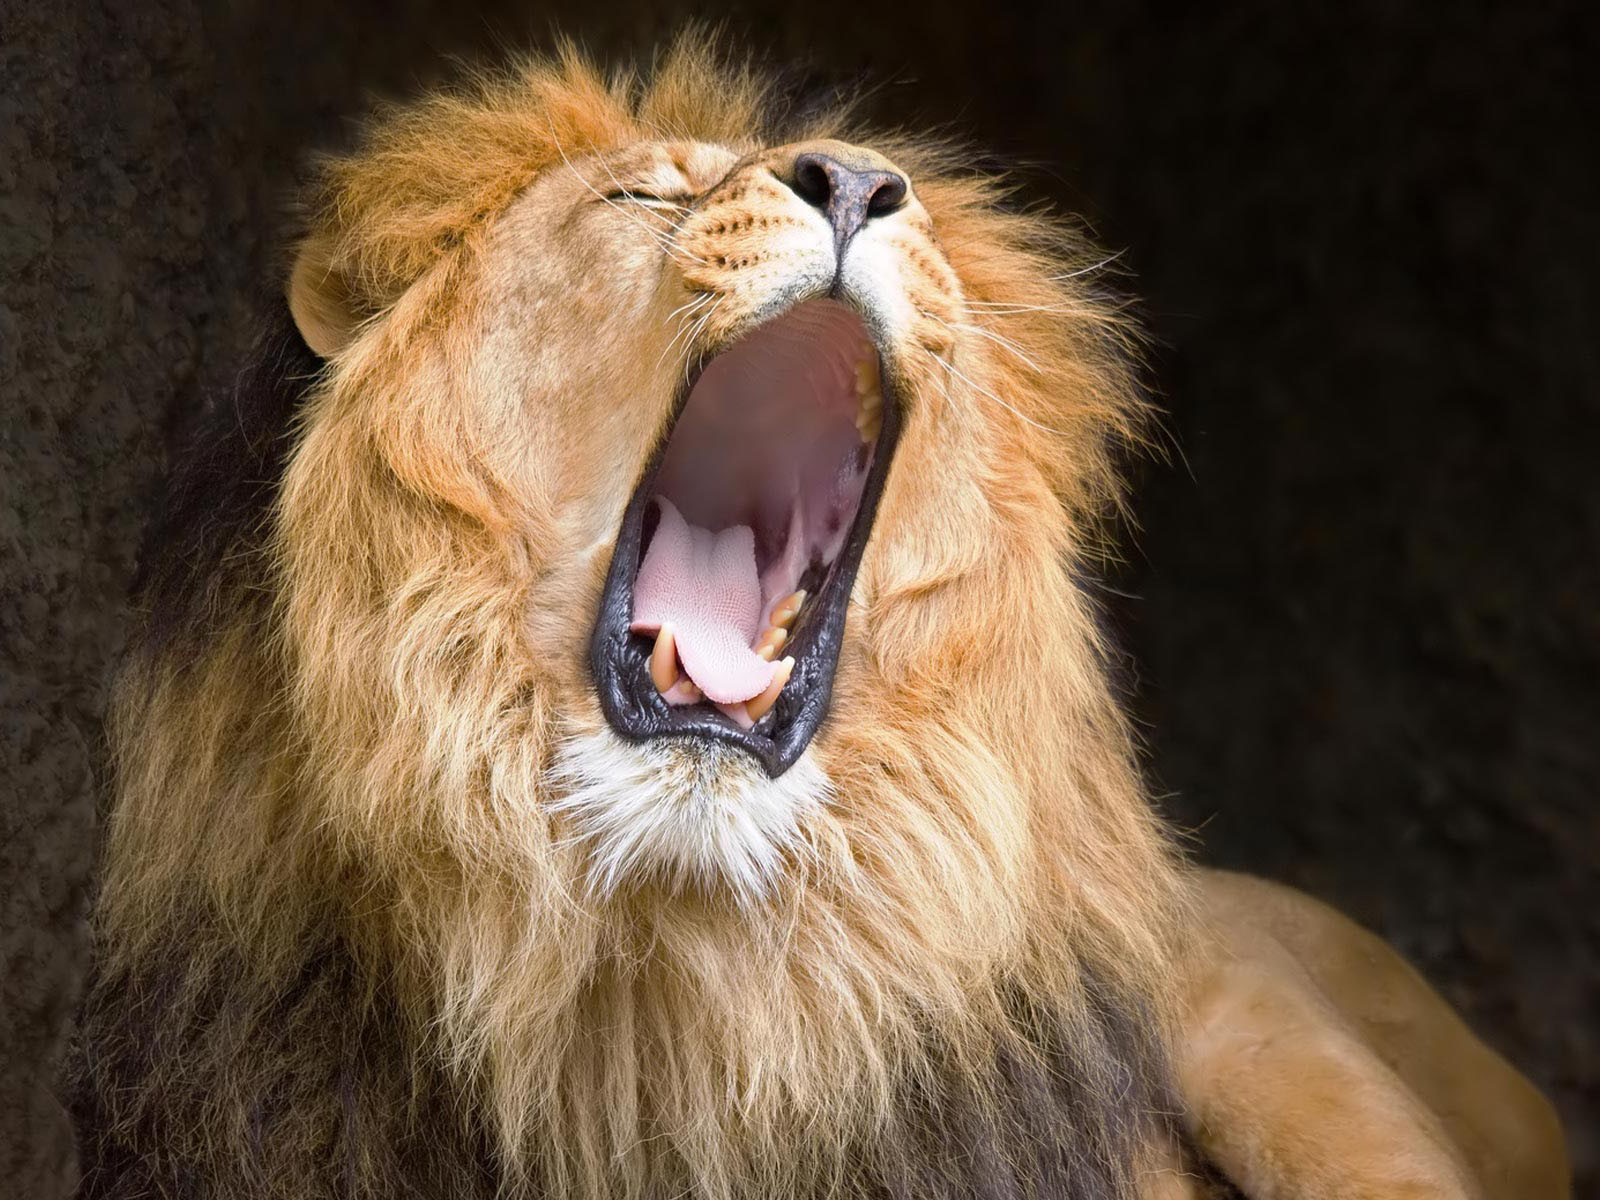 wallpaper: Lion Roaring Wallpapers - photo#24